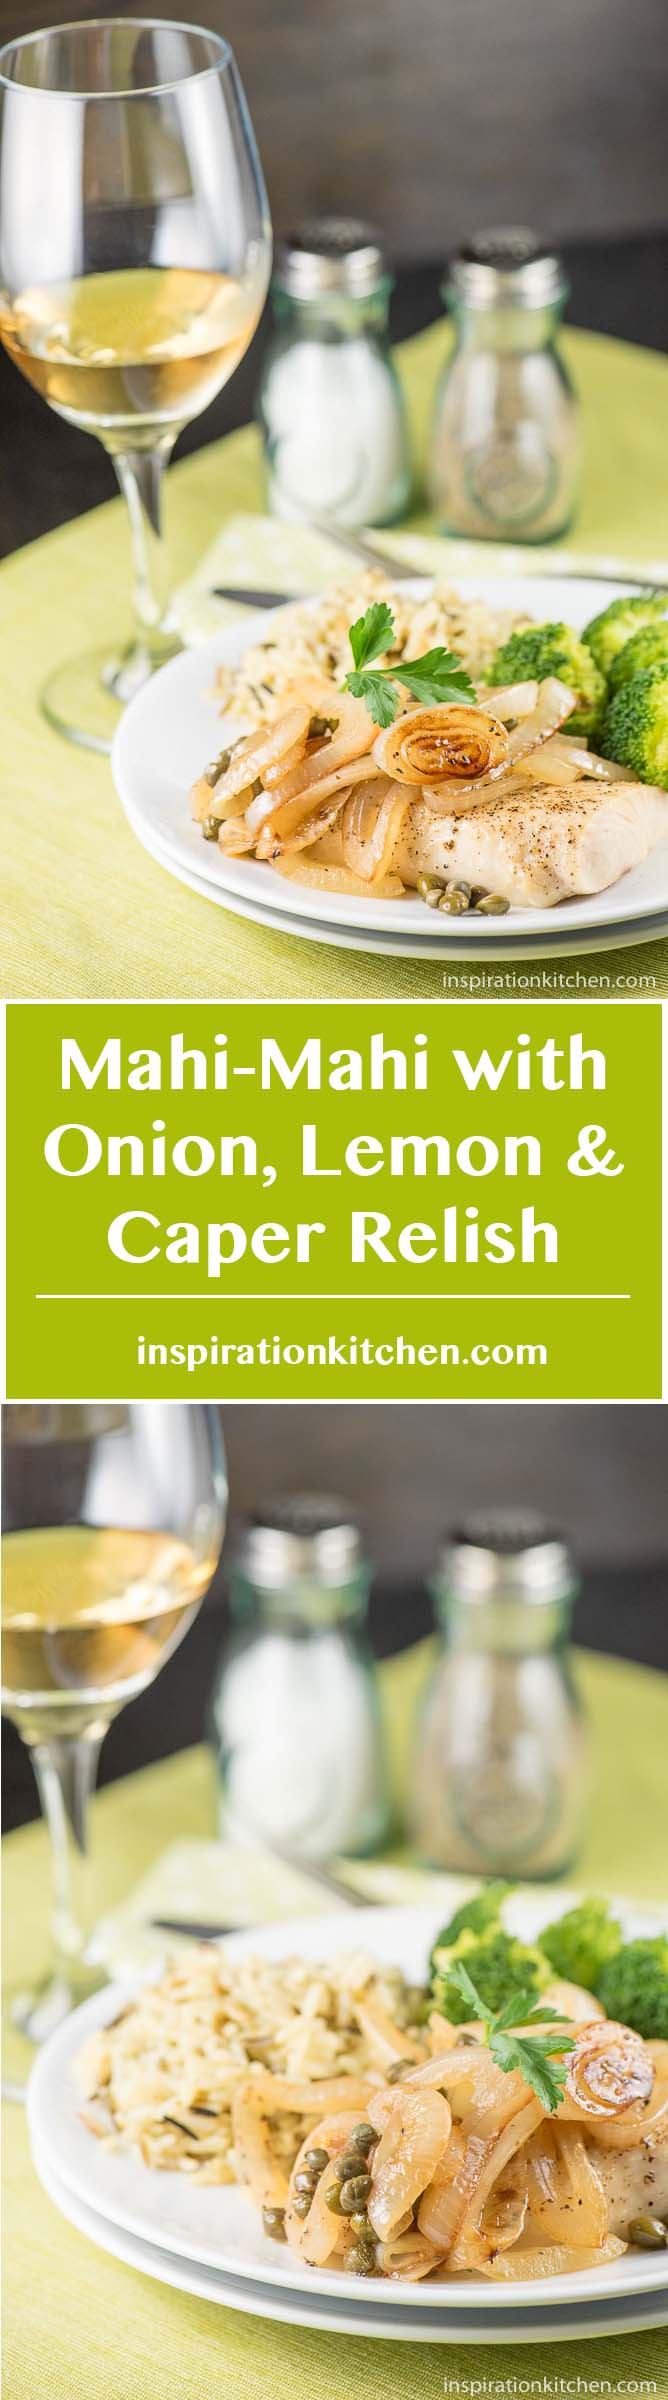 Mahi-Mahi with Onion Lemon Caper Relish - inspirationkitchen.com